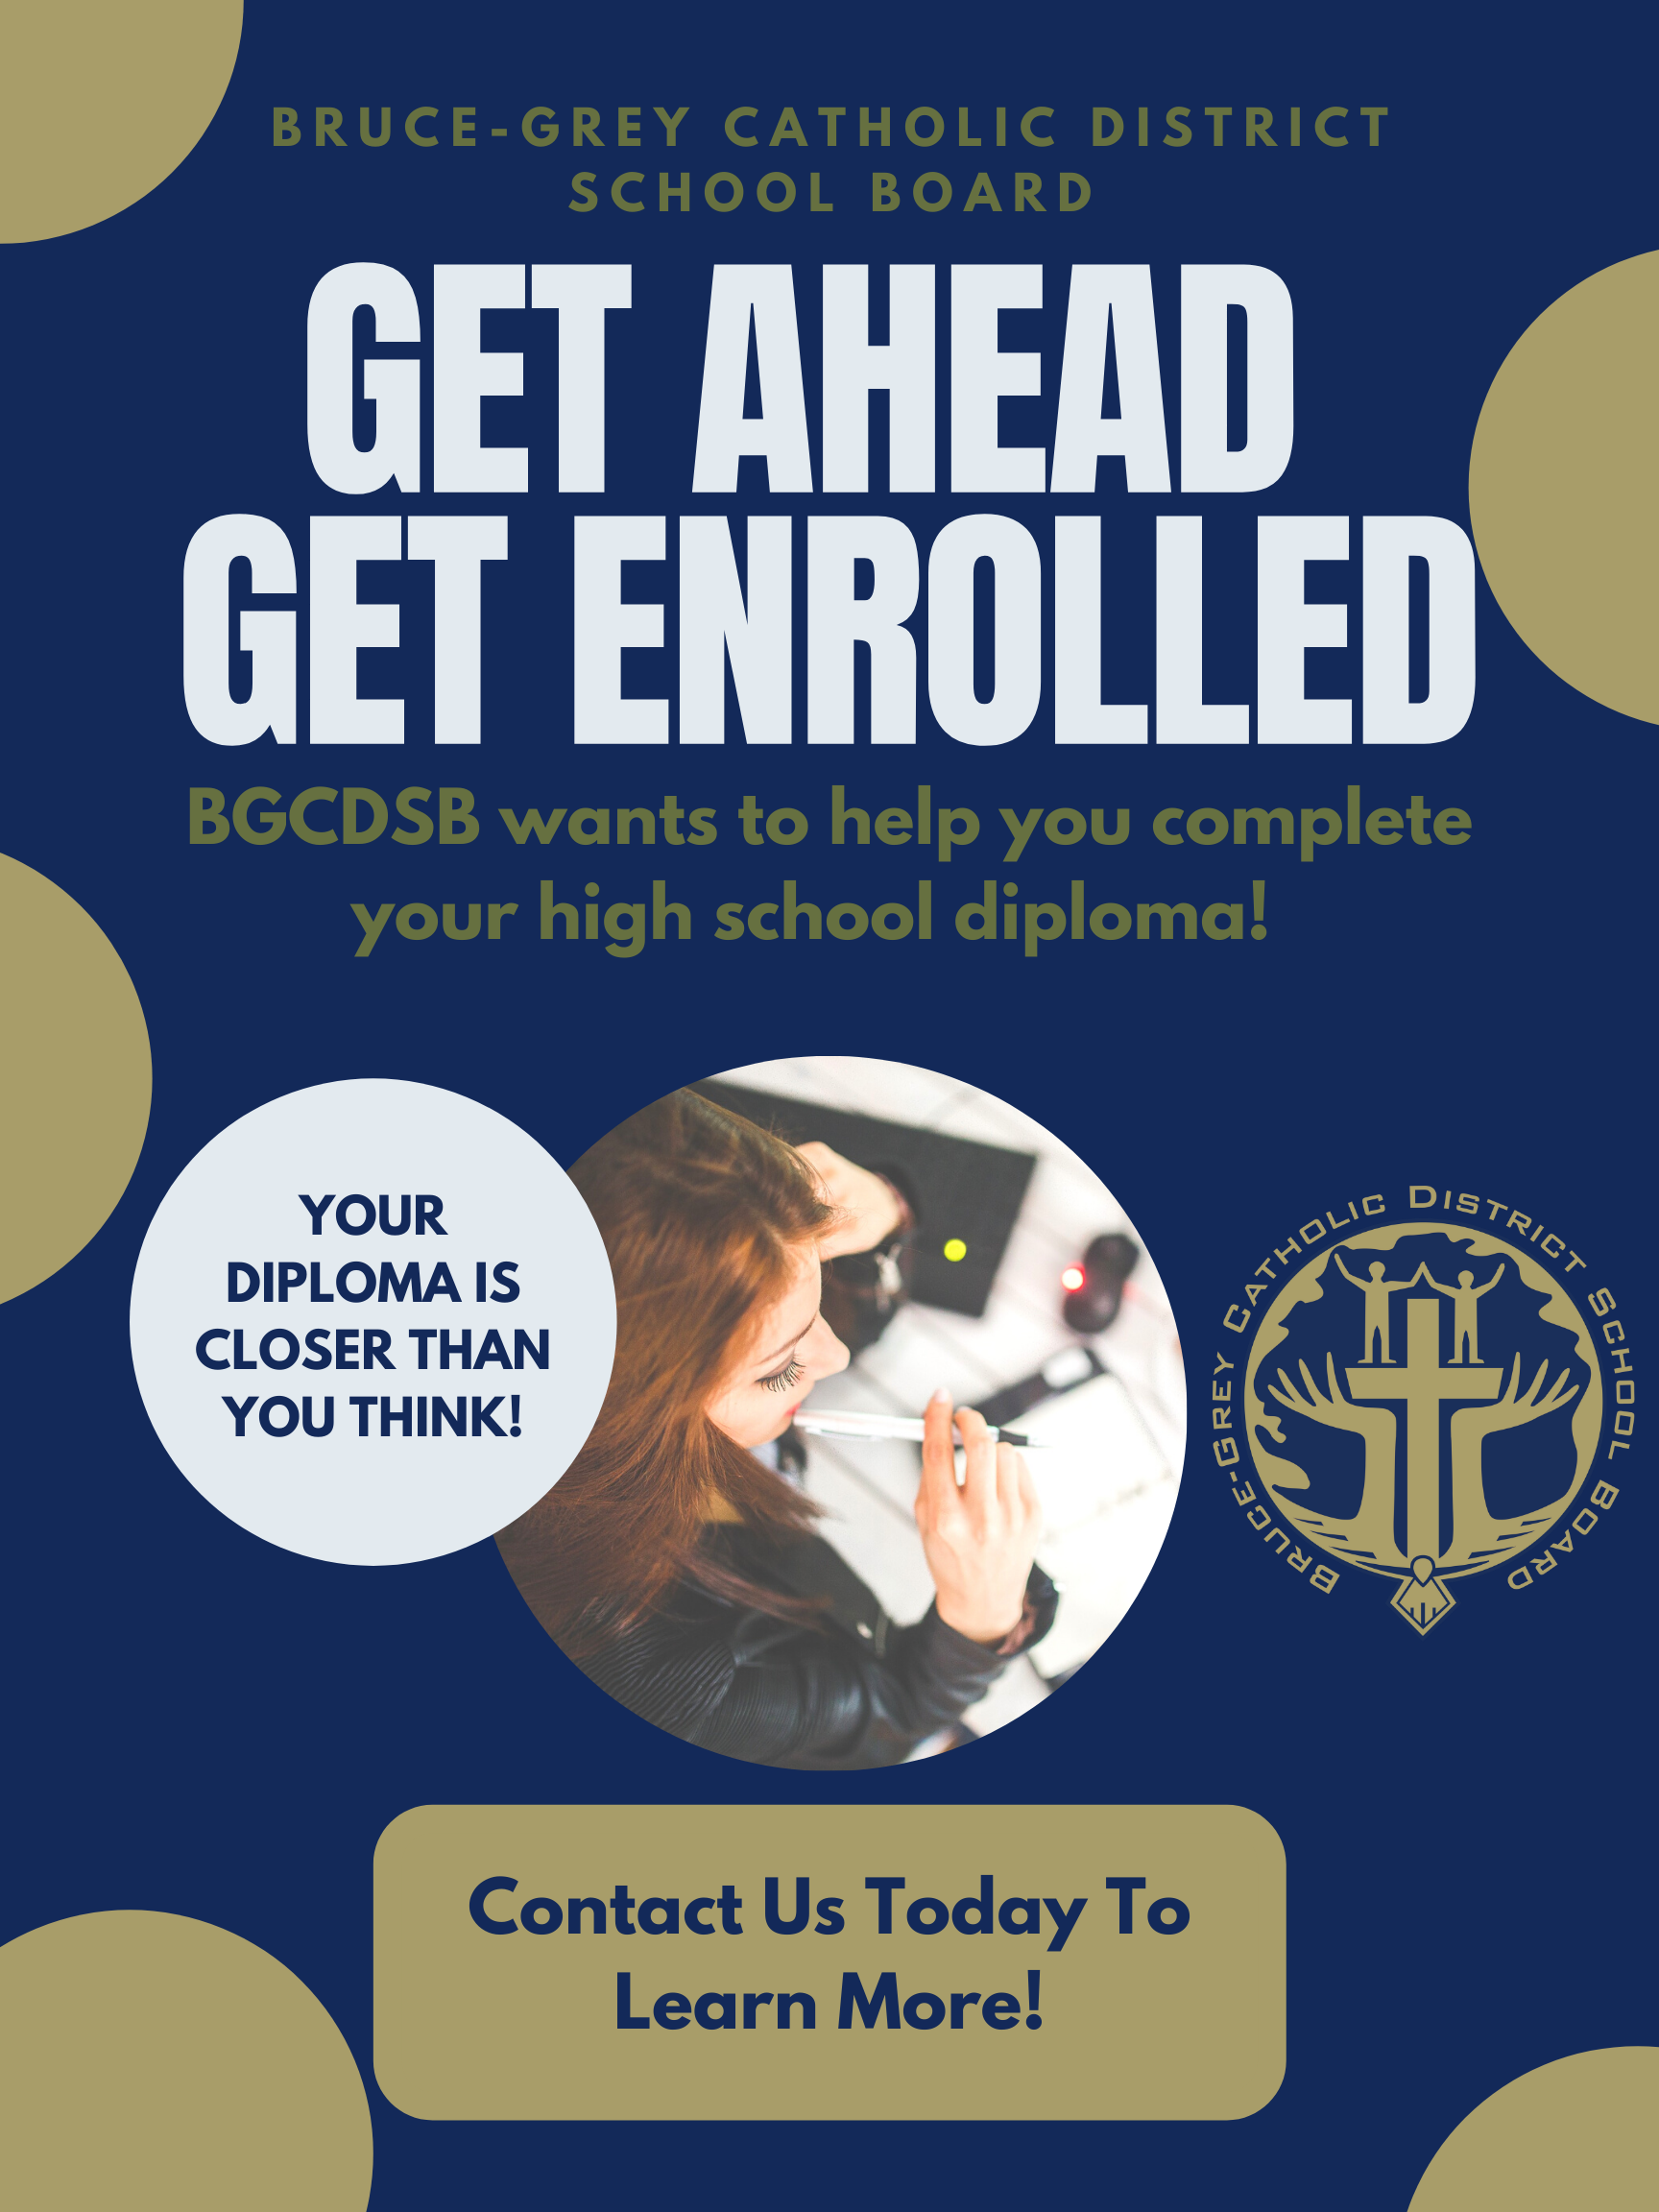 get ahead, get enrolled. BGCDSB wants to help you complete your high school diploma: it's closer than you think. Contact us today to learn more